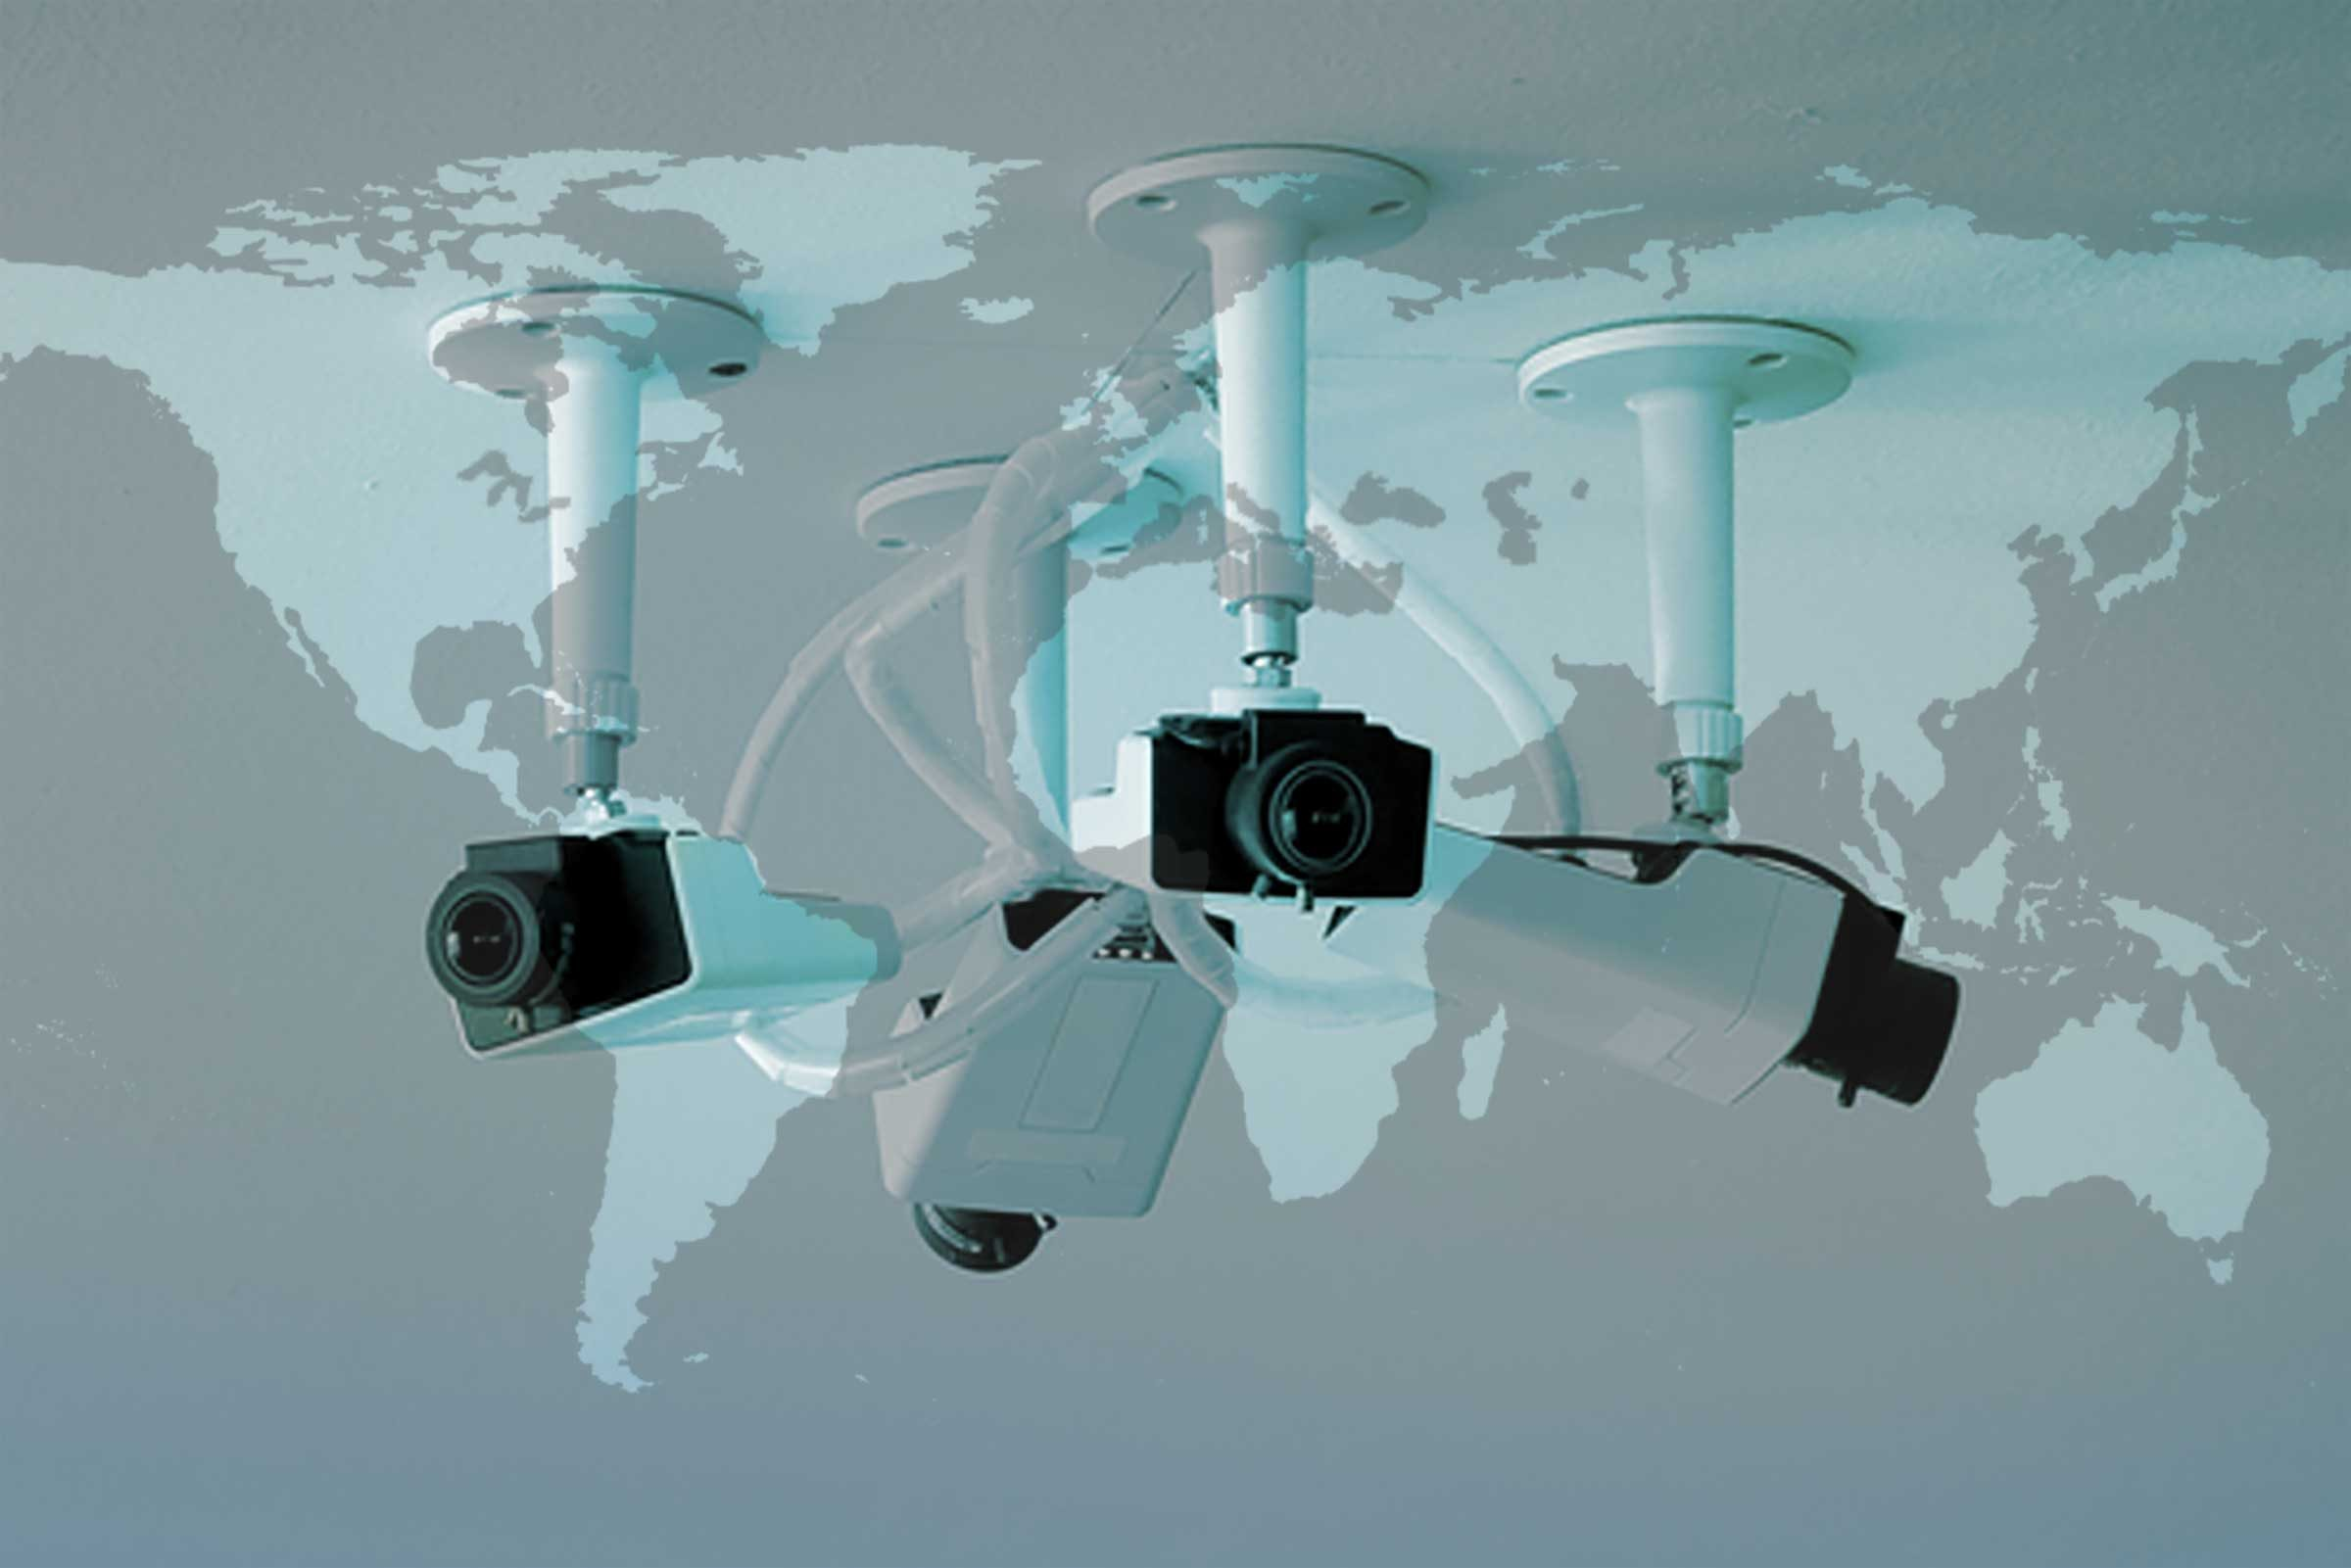 security cameras with world map